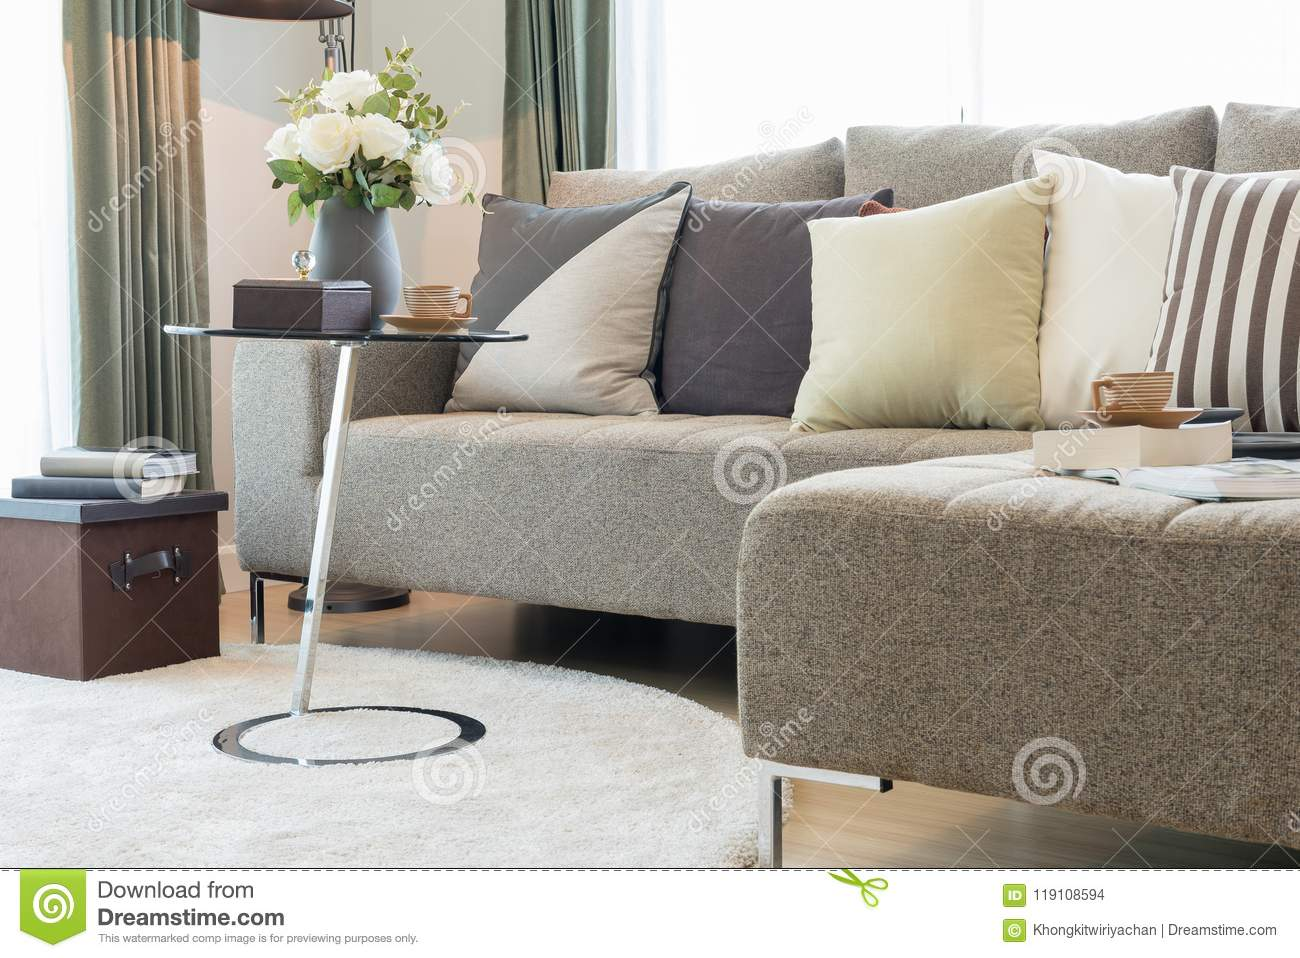 Modern Living Room With Vase Of Plant Stock Photo - Image Of Estate, Comfortable: 119108594